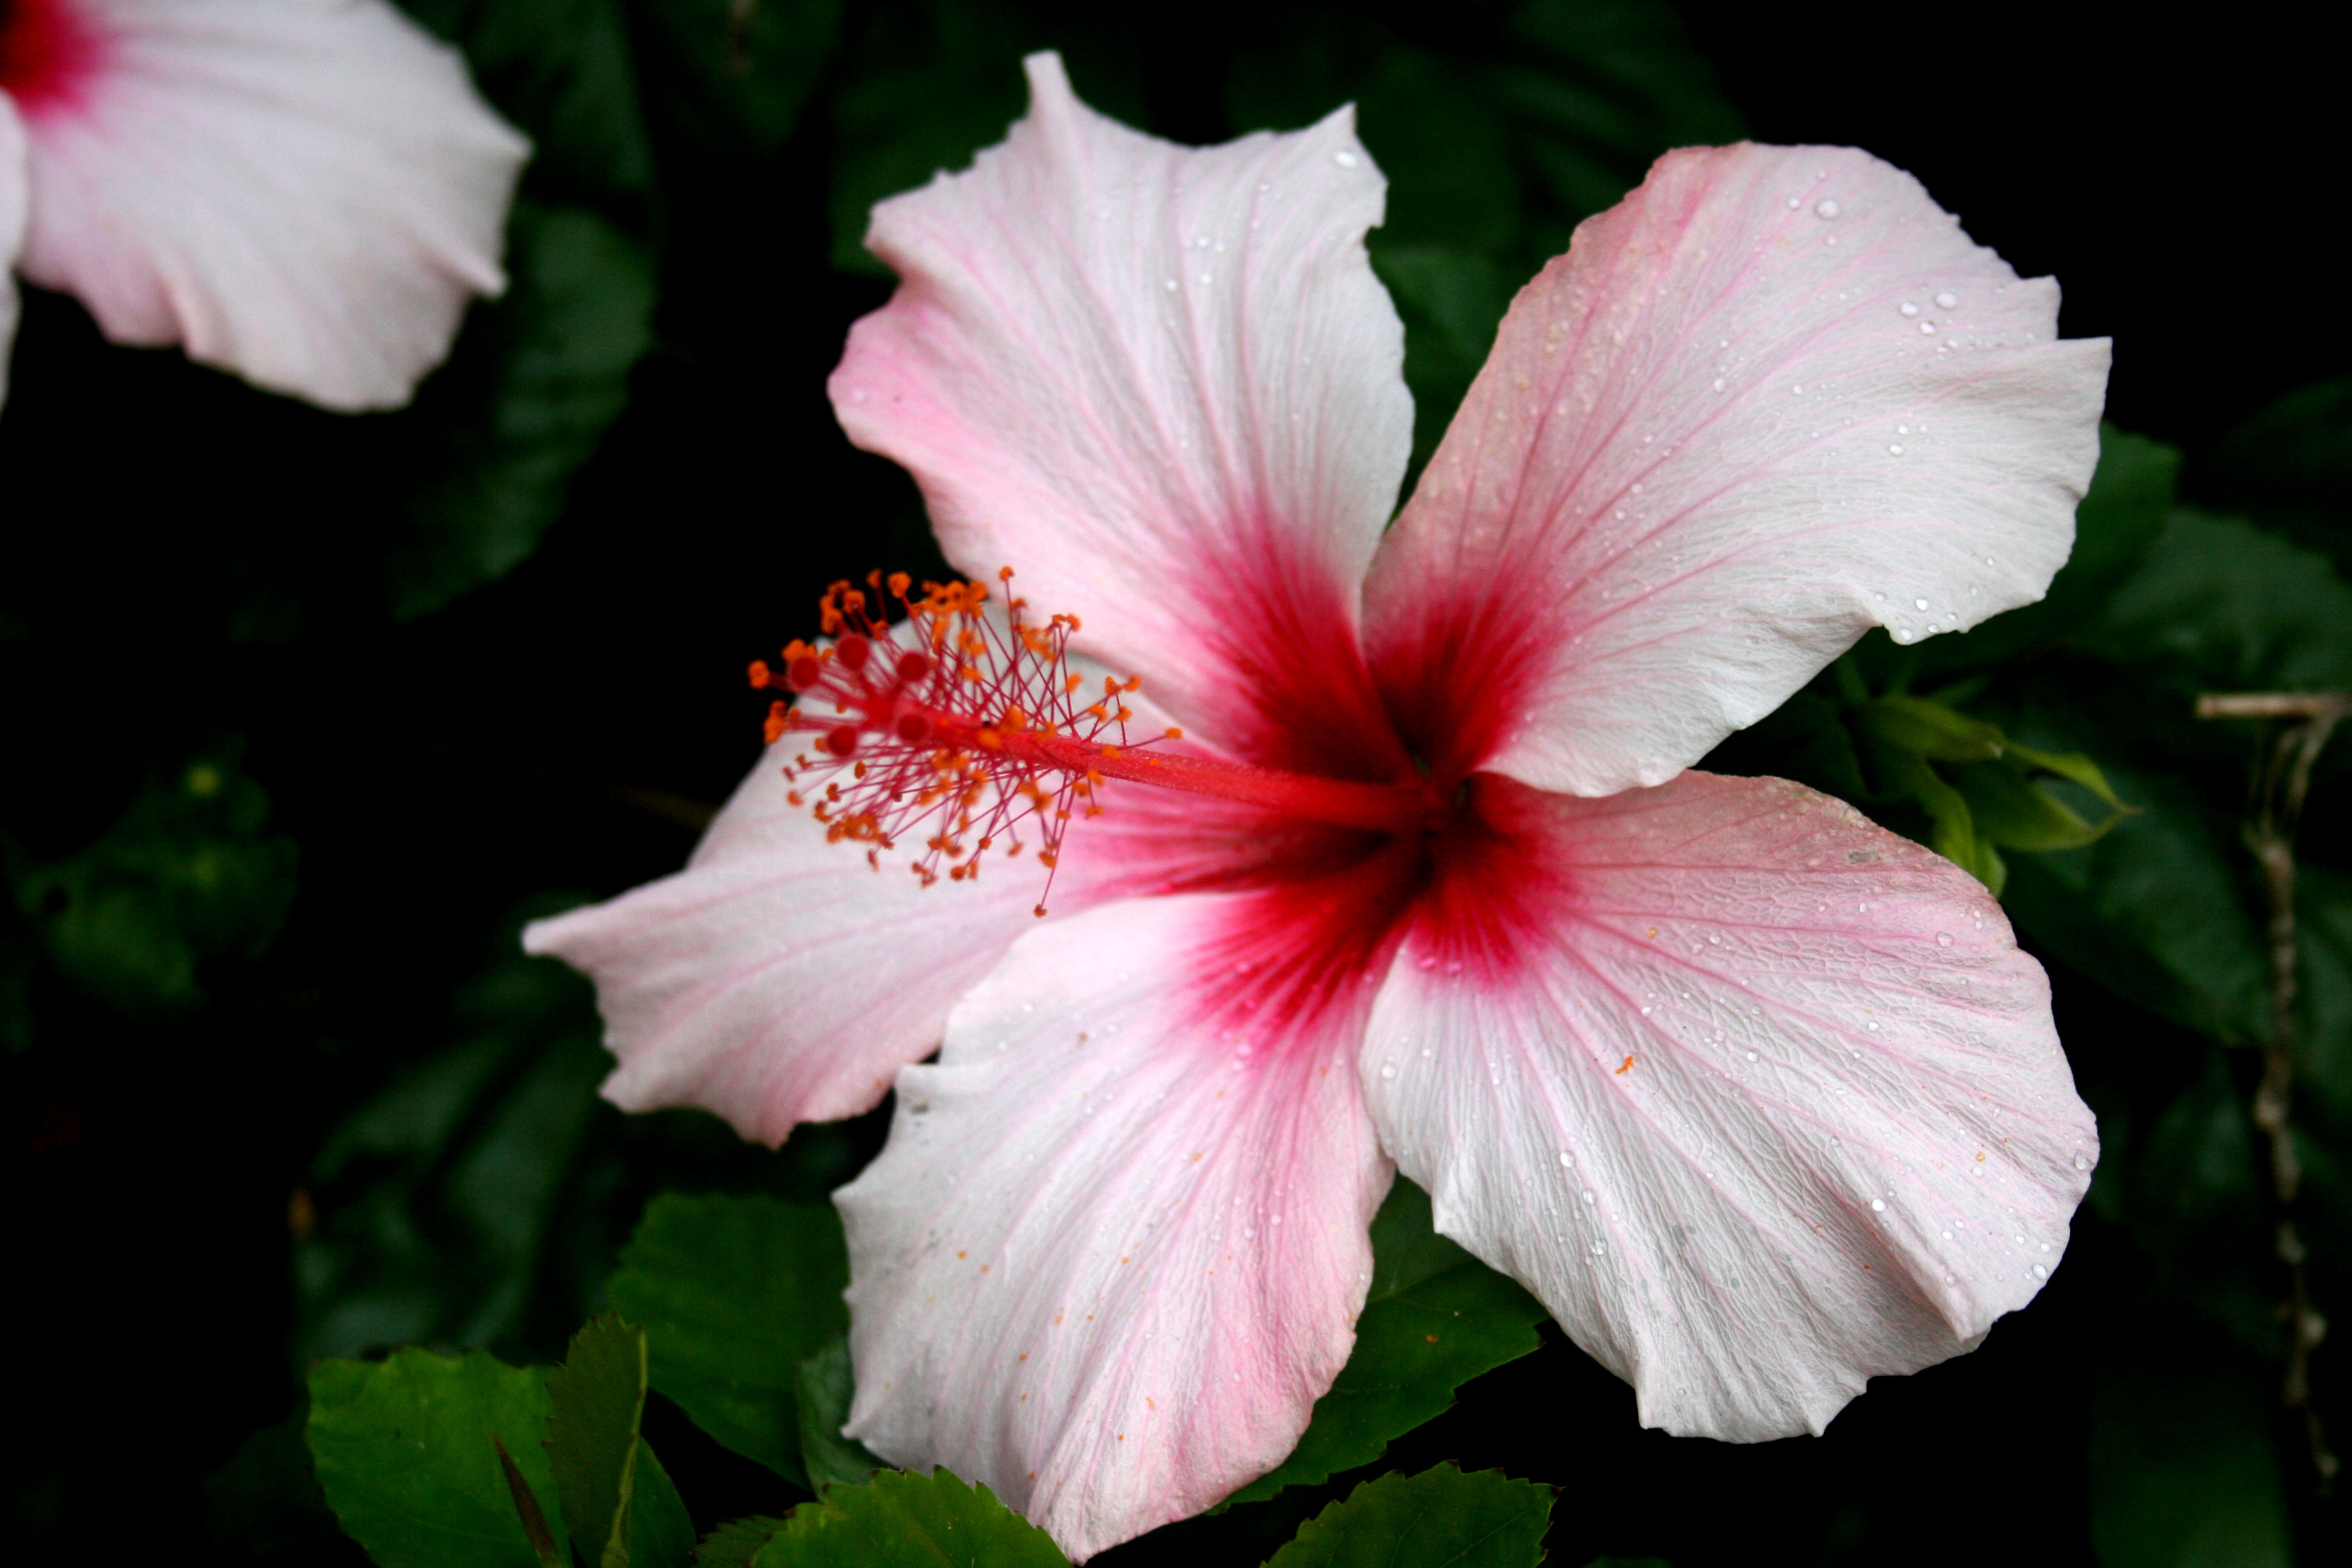 Hibiscus wallpapers pictures images - Hibiscus images download ...